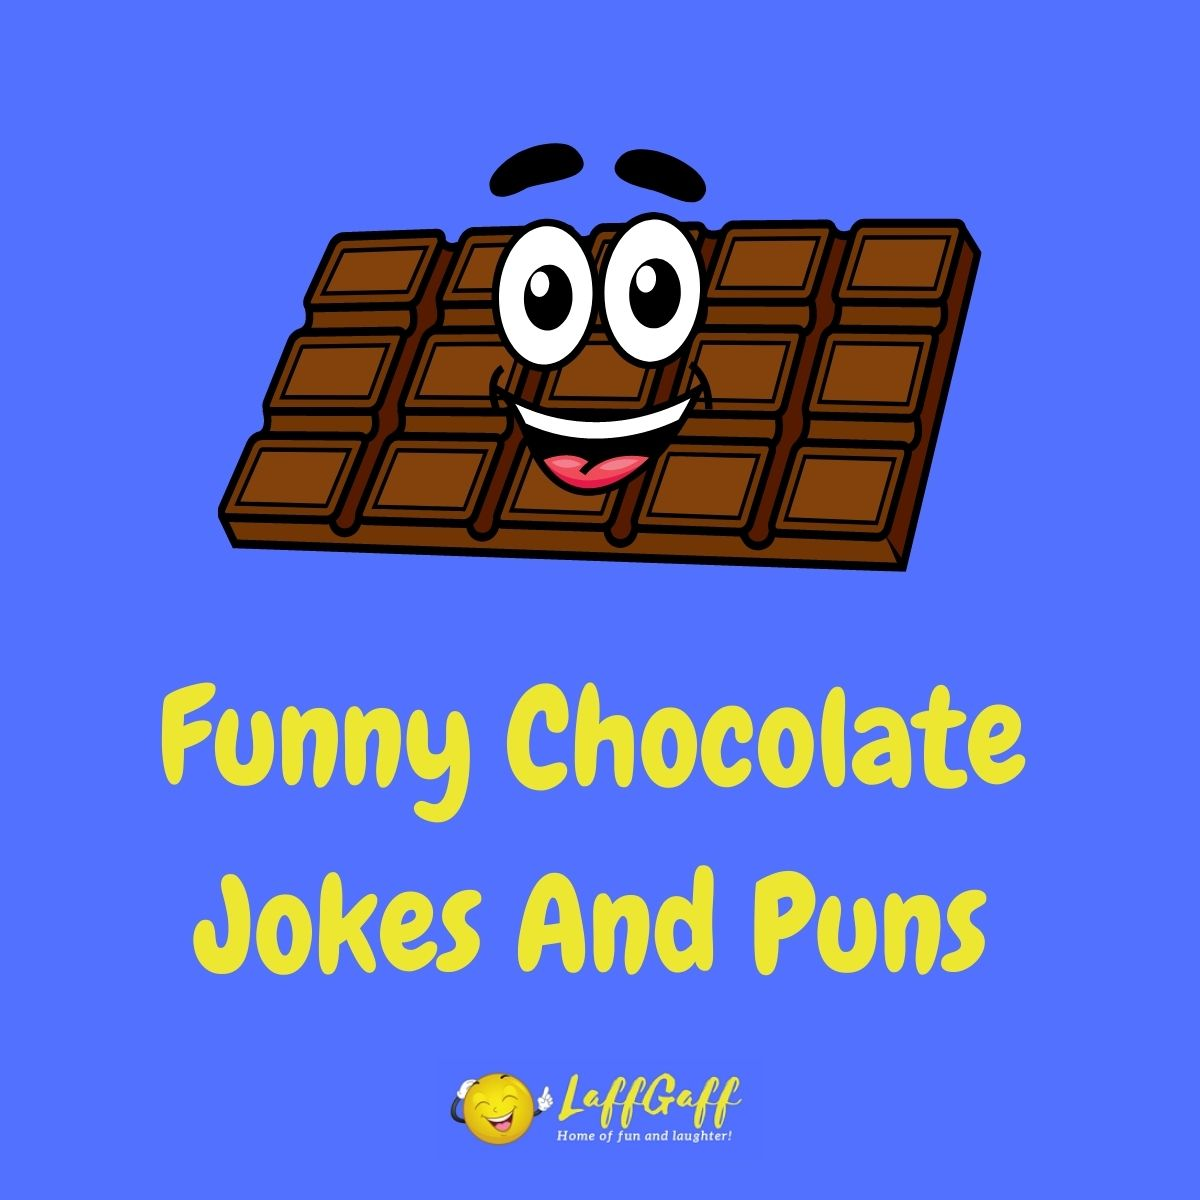 Featured image for a page of funny chocolate jokes and puns.